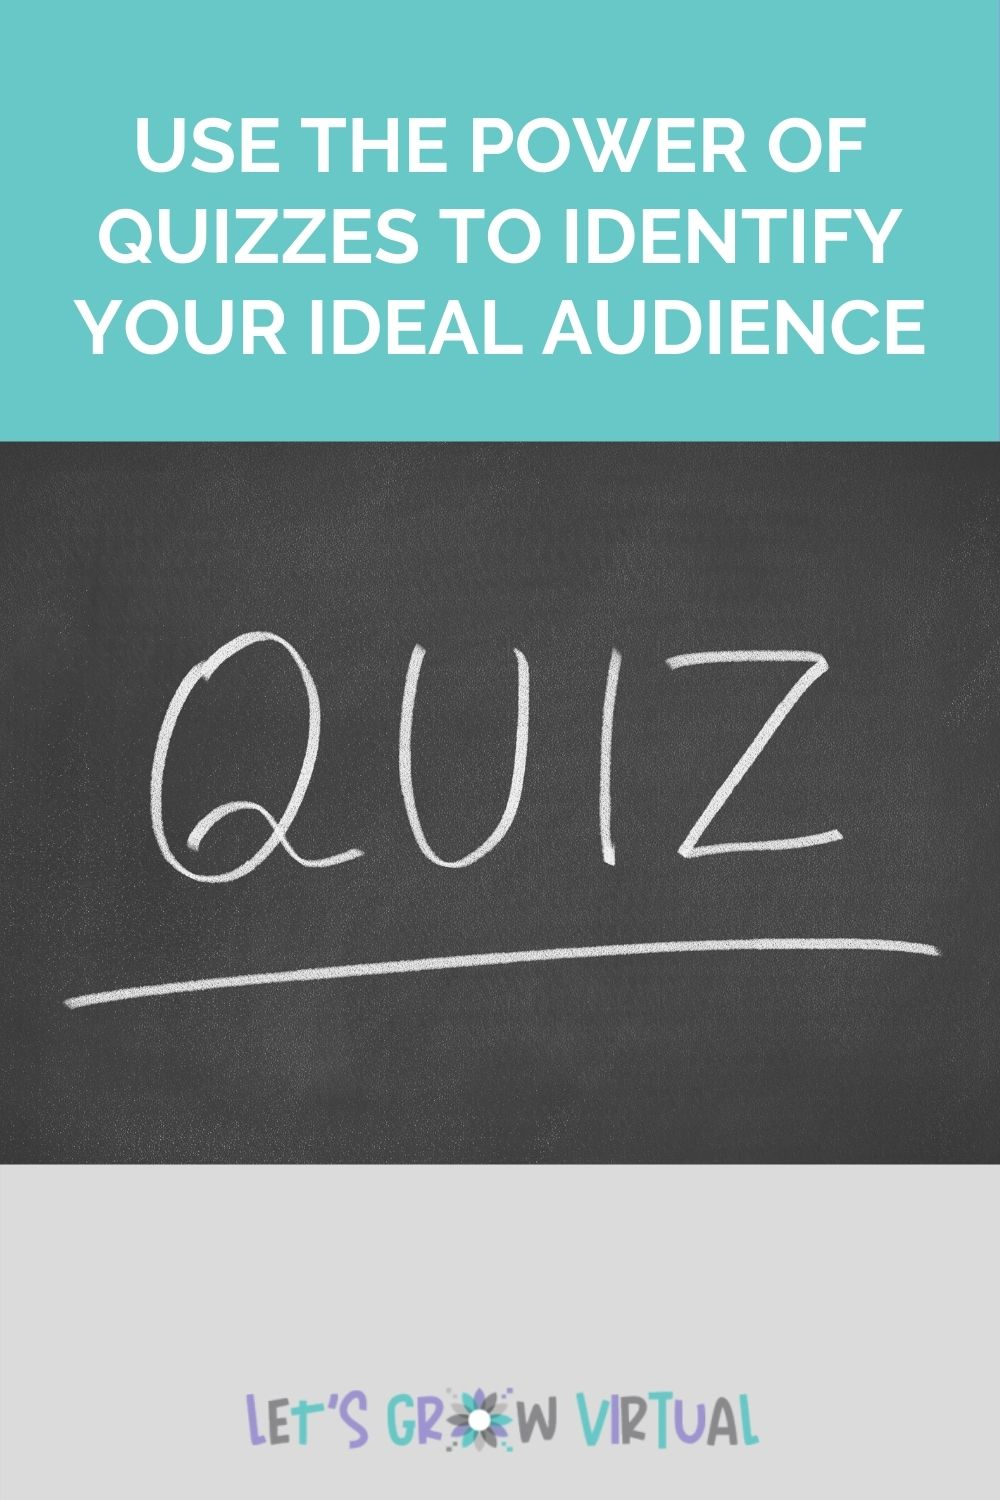 Use the Power of Quizzes to Identify Your Ideal Audience